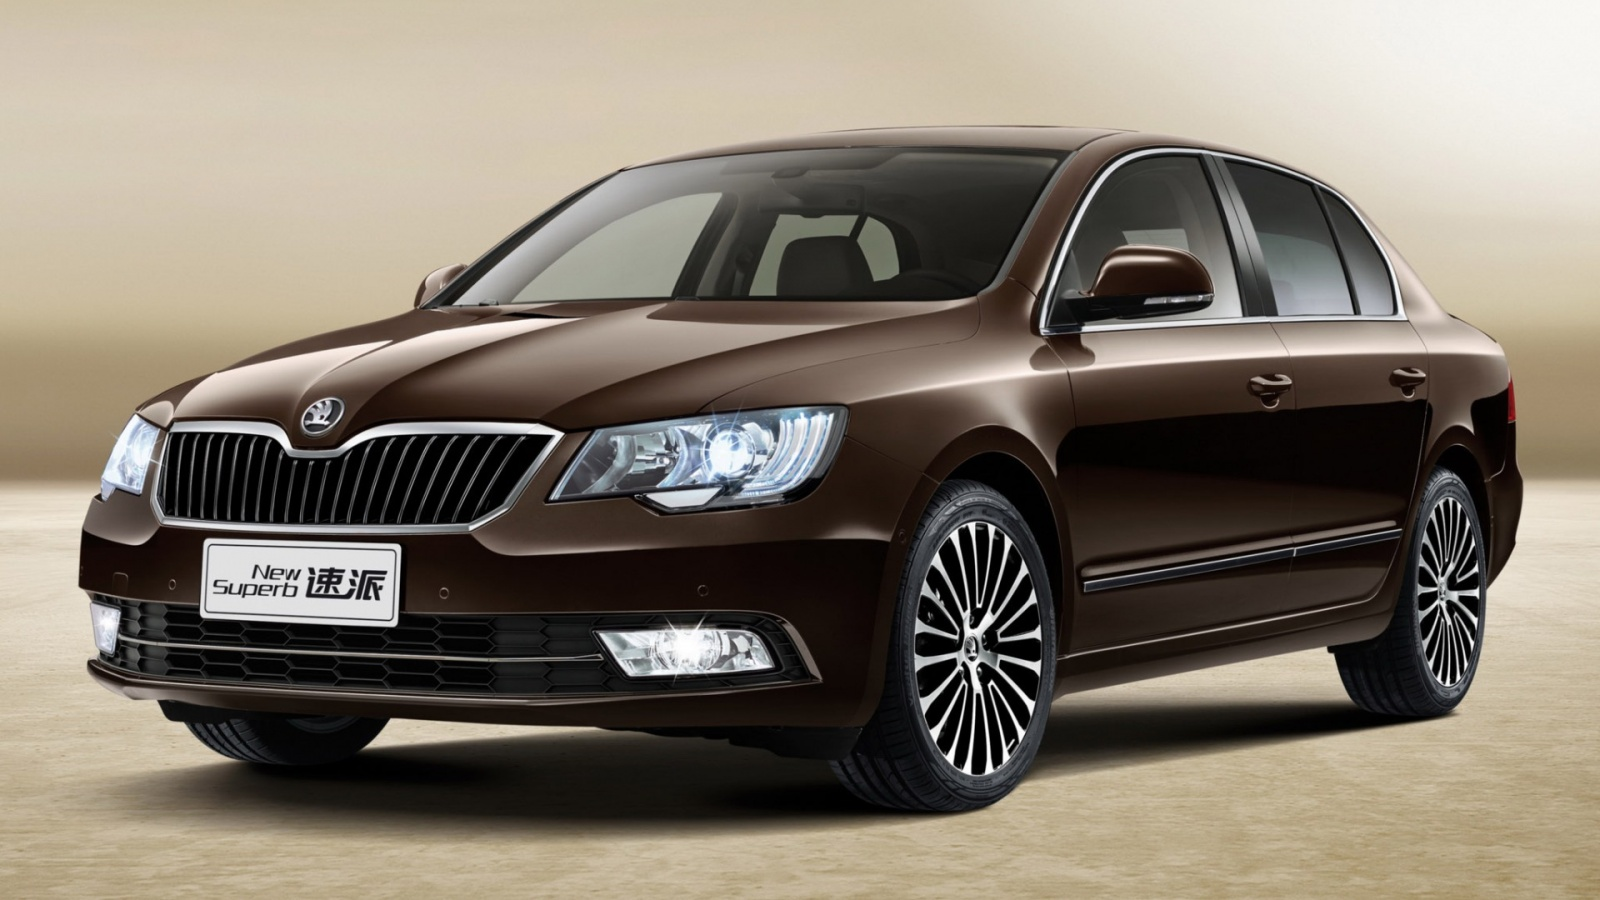 Skoda Superb China Version 2013